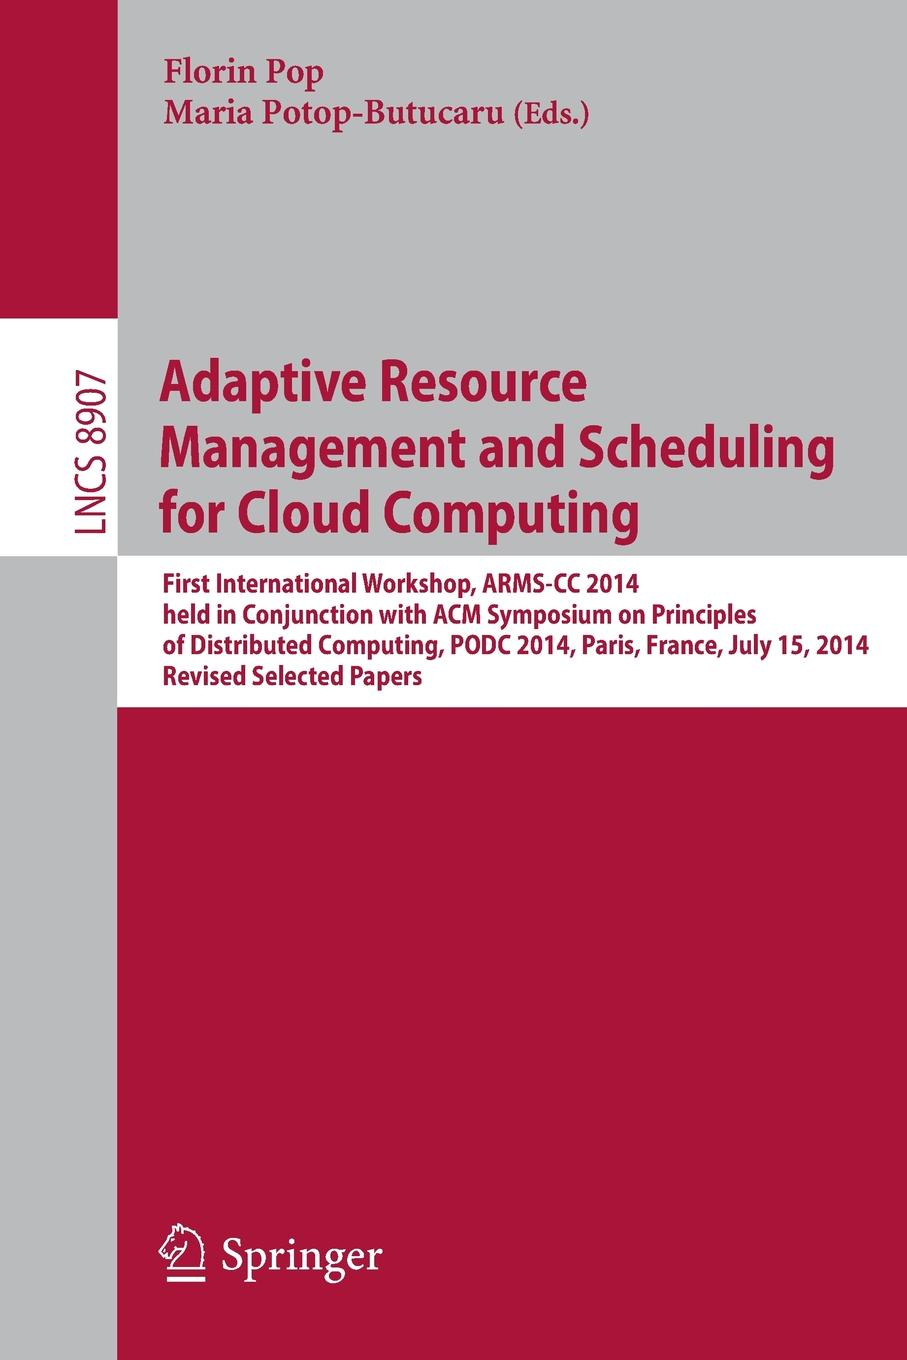 Adaptive Resource Management and Scheduling for Cloud Computing. First International Workshop, ARMS-CC 2014, held in Conjunction with ACM Symposium on Principles of Distributed Computing, PODC 2014, Paris, France, July 15, 2014, Revise... цена в Москве и Питере